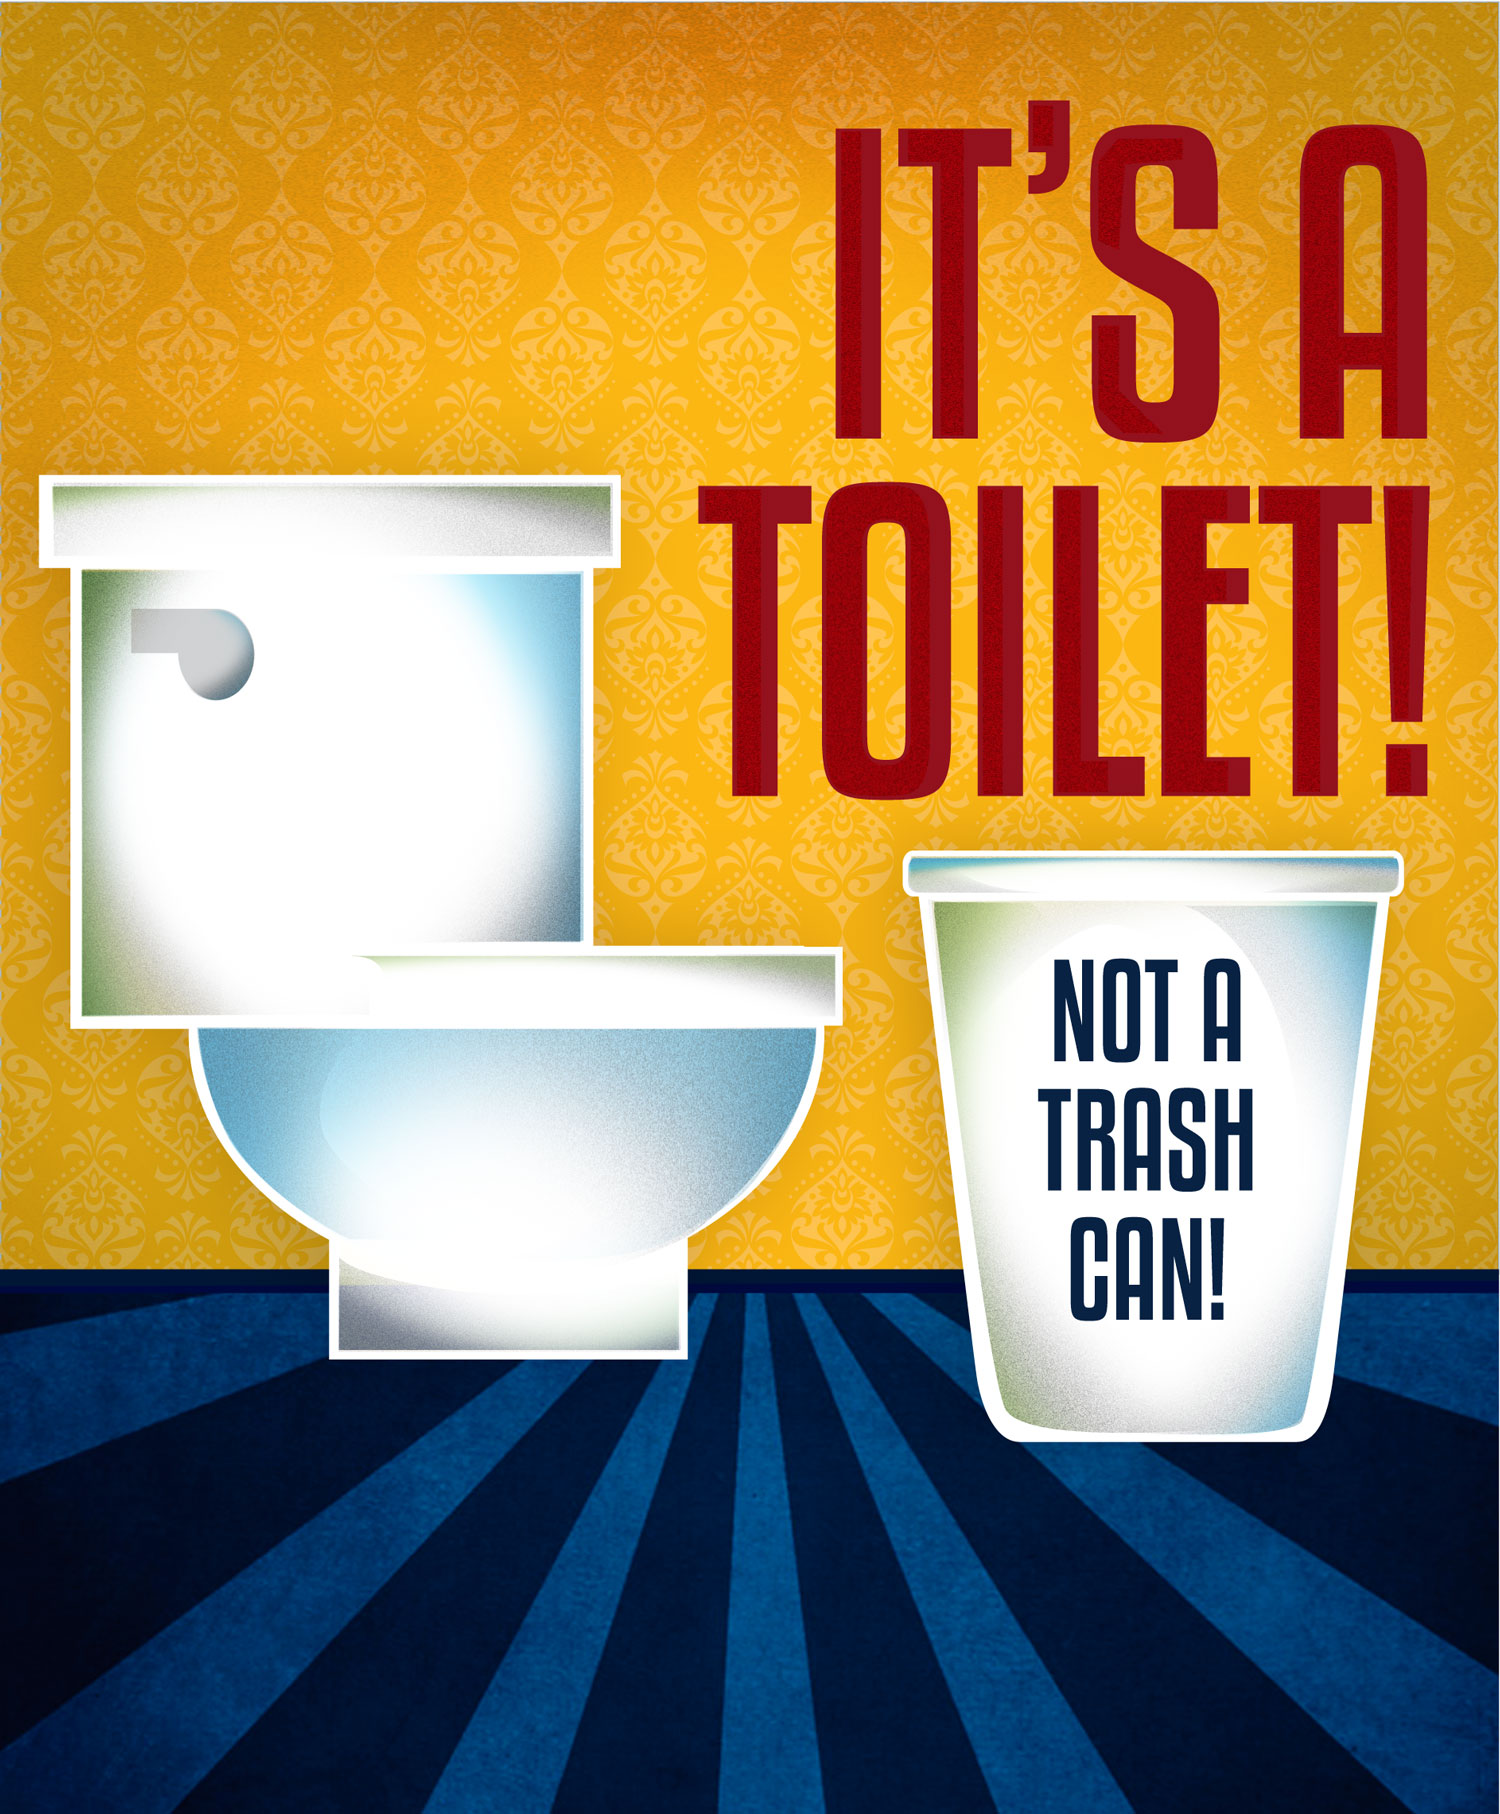 10 Items to Never Flush Down the Toilet-